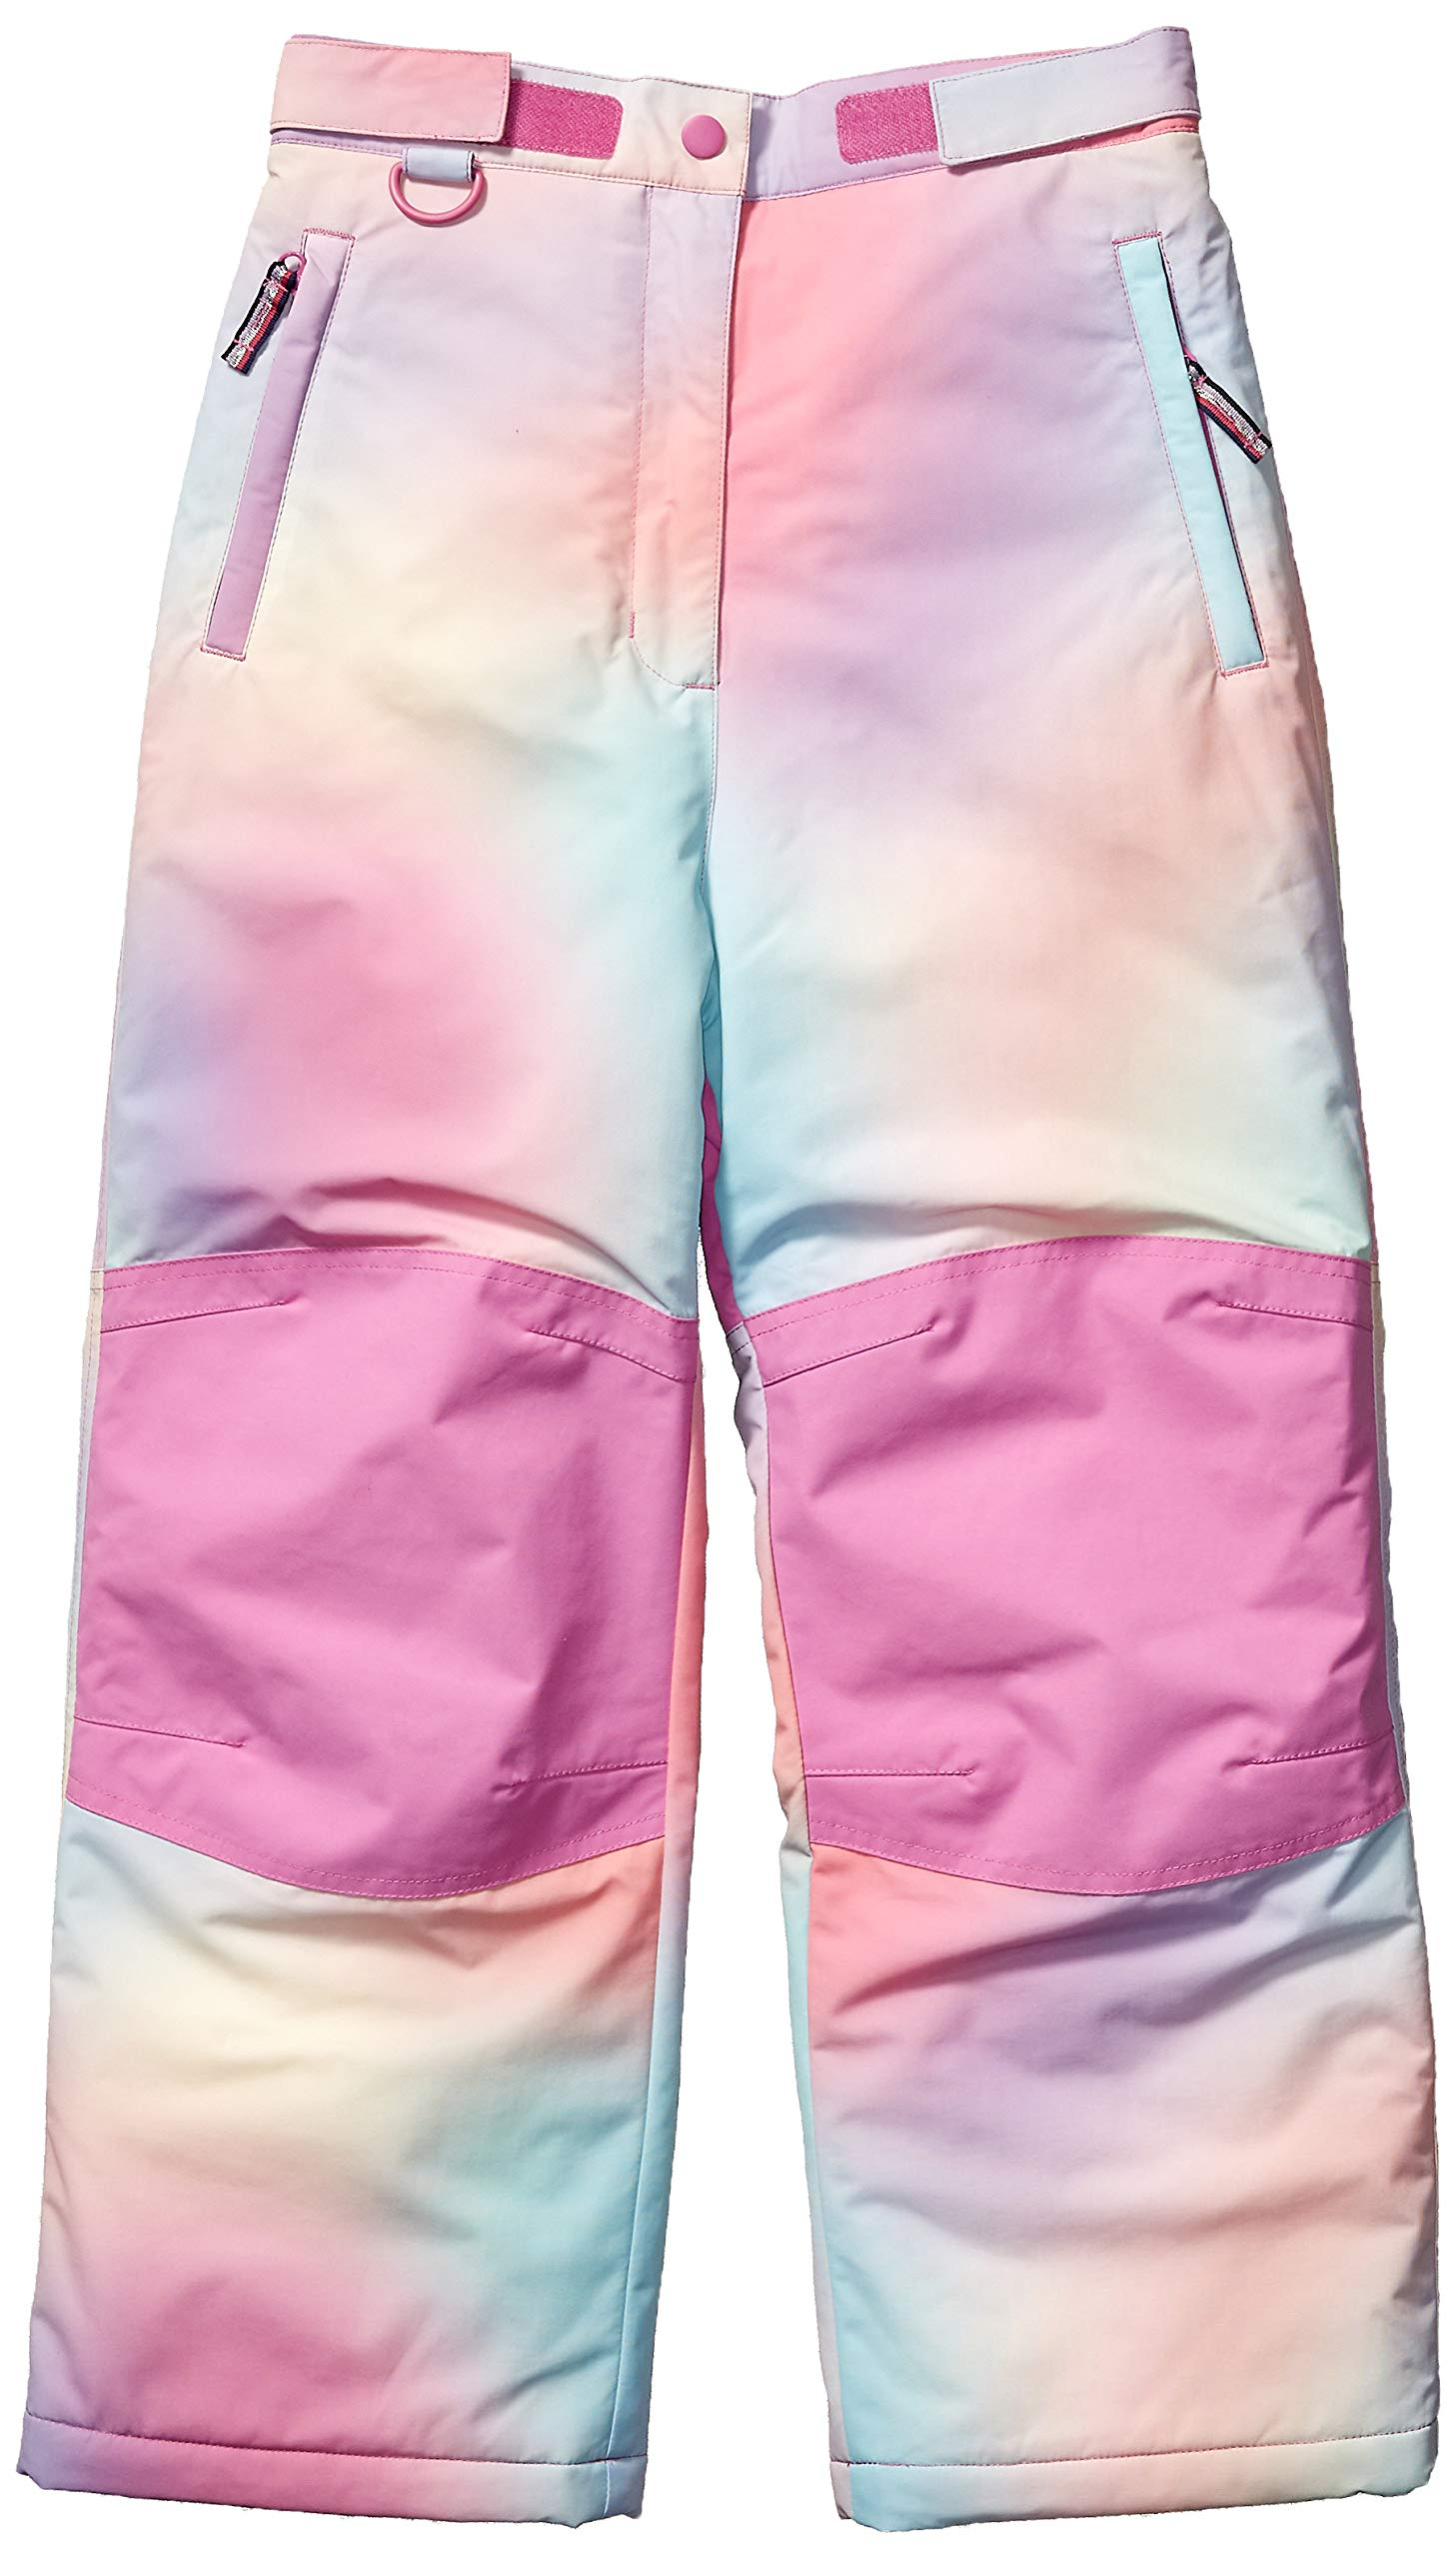 Amazon Essentials Girls' Little Water-Resistant Snow Pant, Ombre Pink, Small by Amazon Essentials